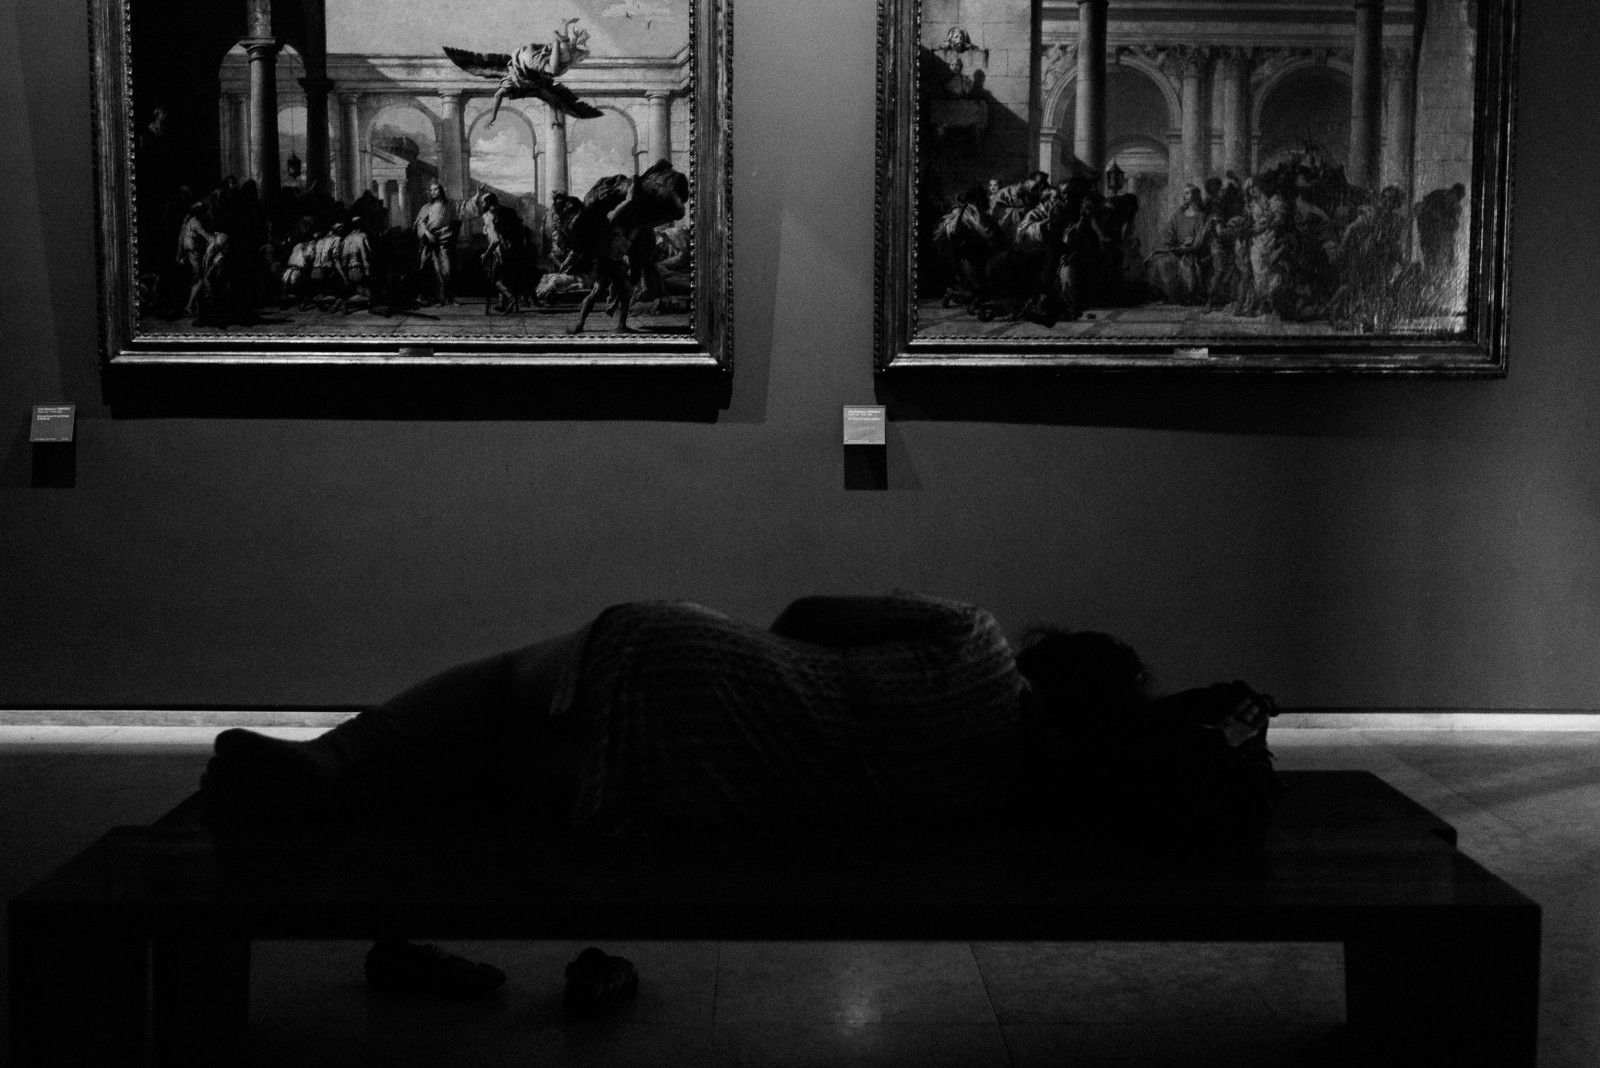 paris_louvre_france_museum_woman_sleeping_35mm_summicron_leica_m240_jipvankuijk